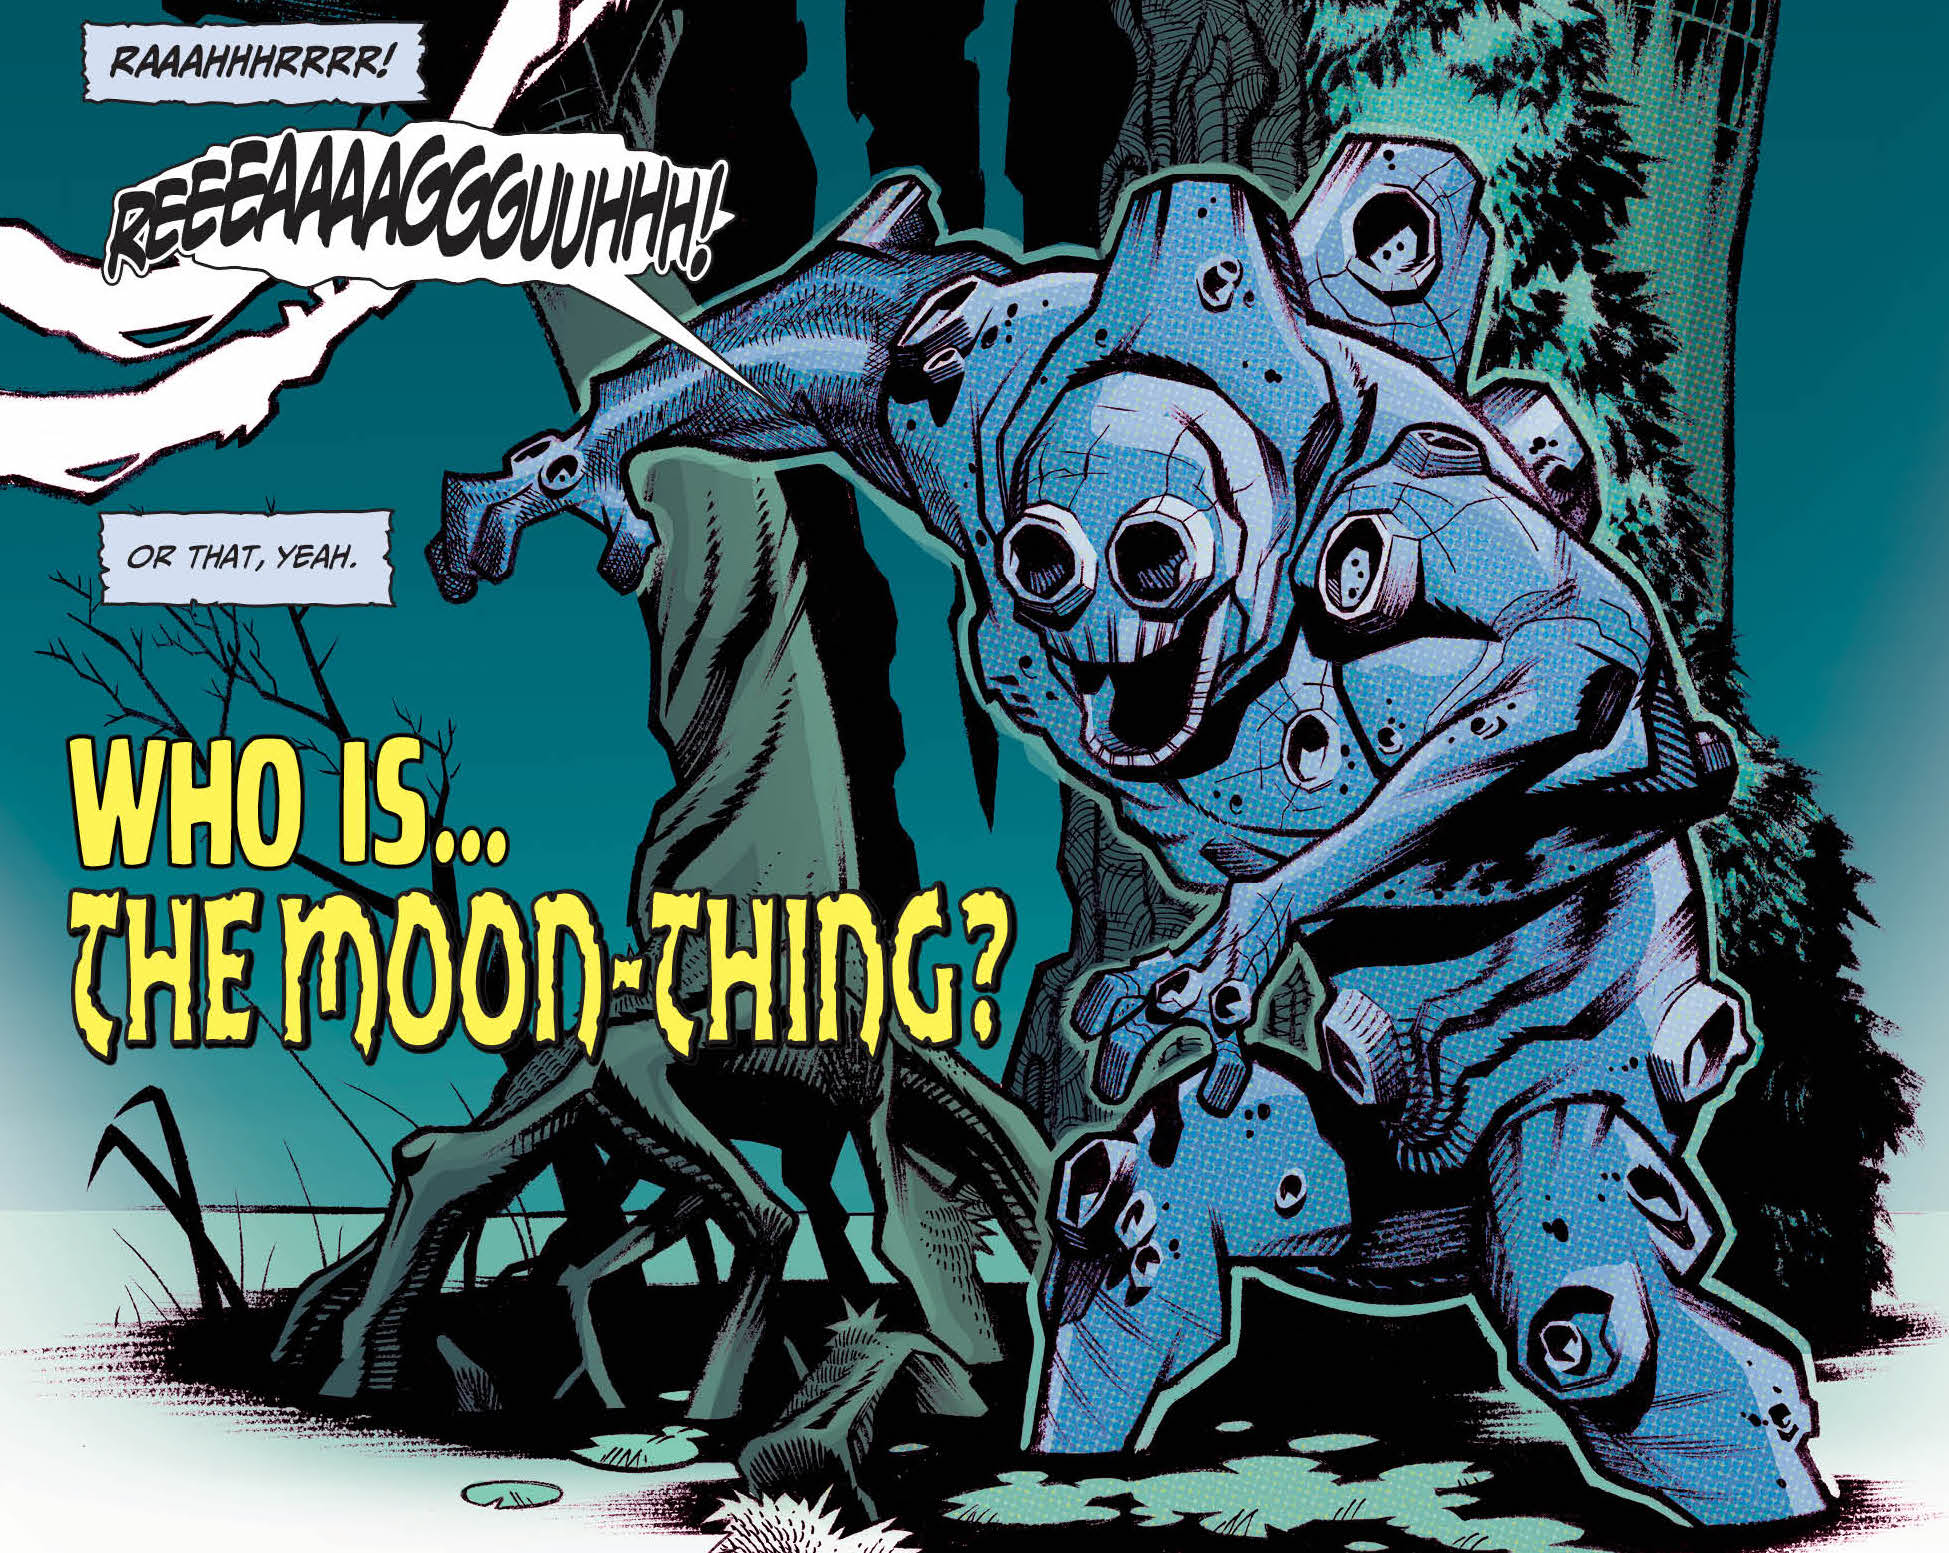 First Look: Moon-Thing backup story from AHOY Comics' Bronze Age Boogie #5